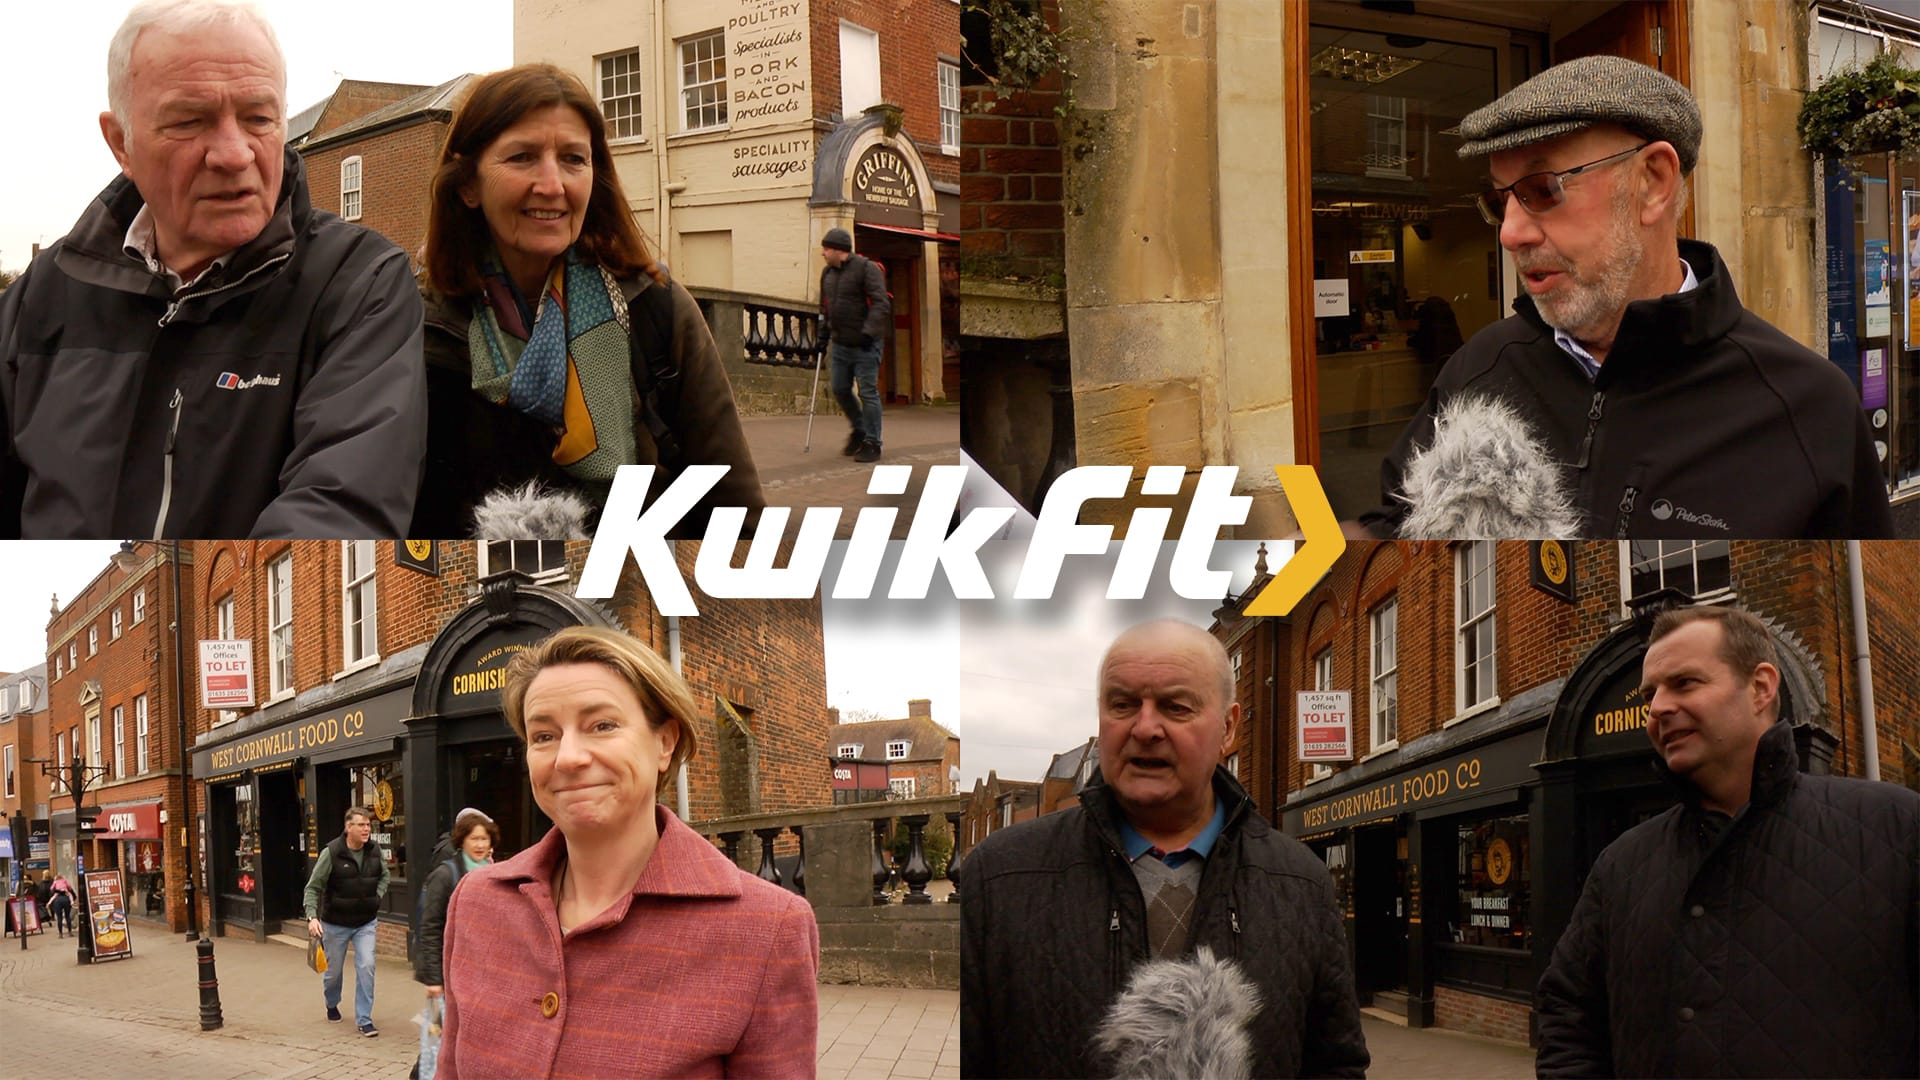 Filming voxpops on the street for Kwikfit